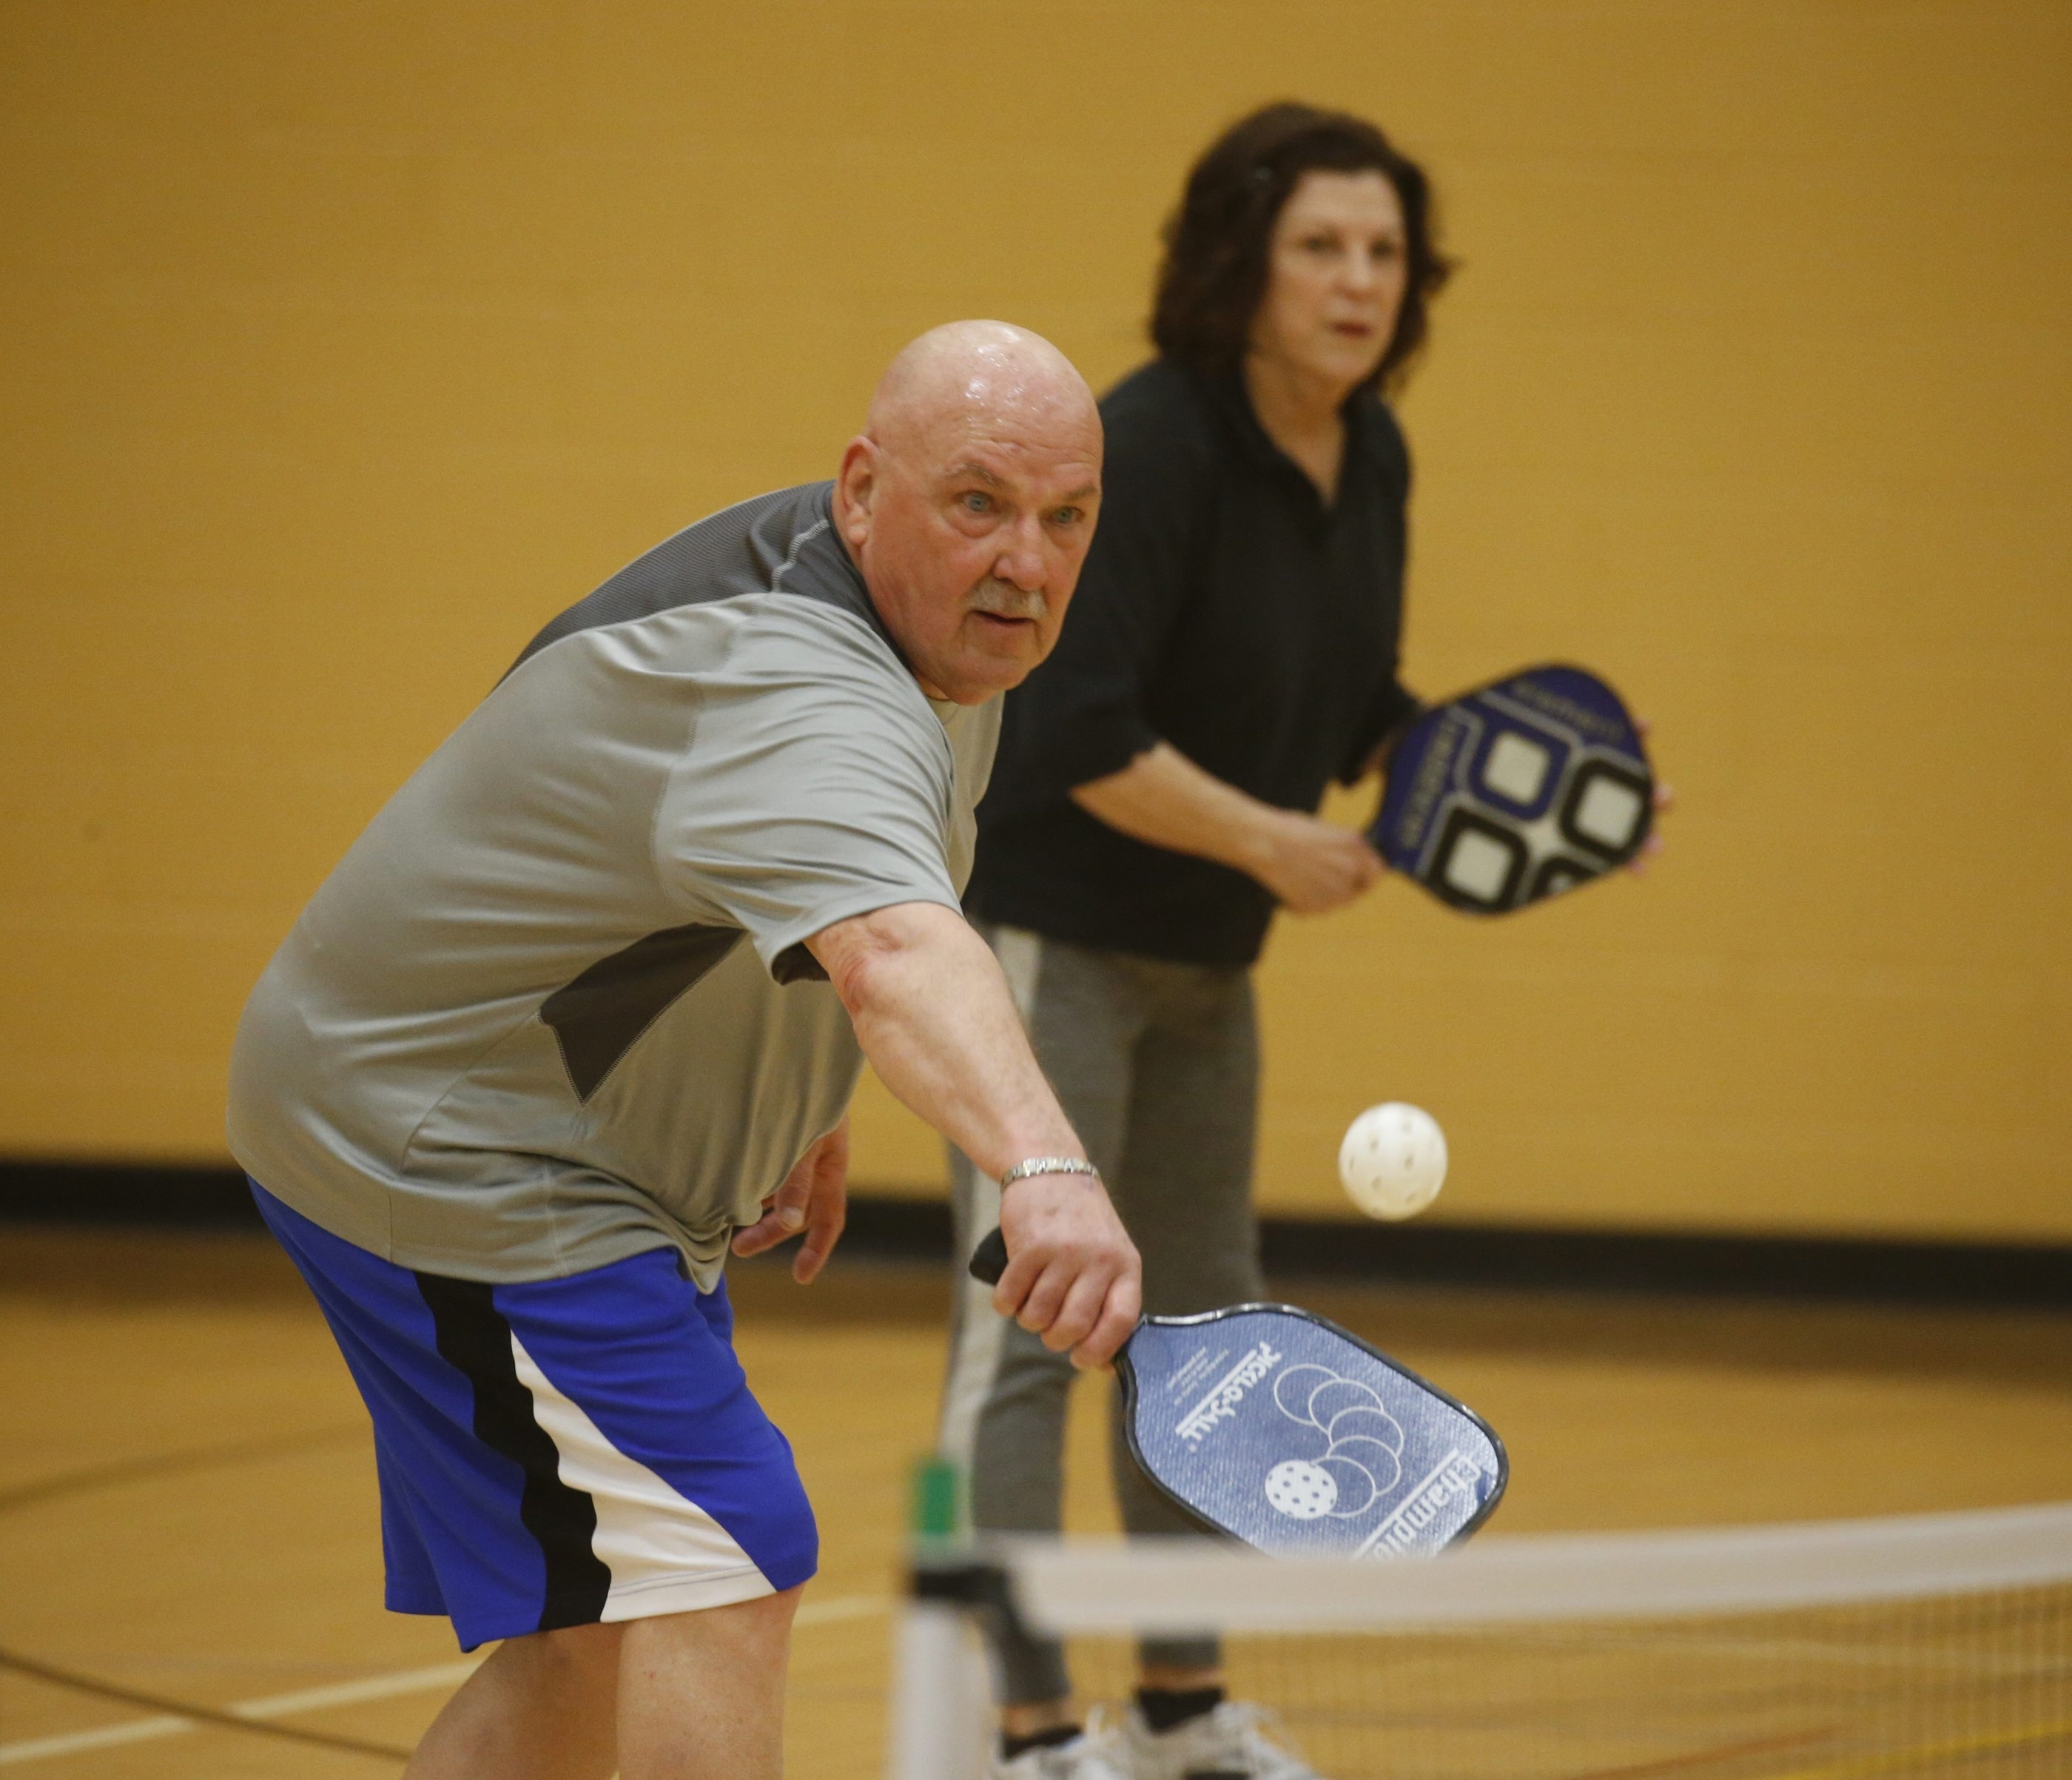 Larry Gross plays pickleball, a newly popular combination of tennis and Ping Pong, at Independent Health Family Branch YMCA.  (John Hickey/Buffalo News)